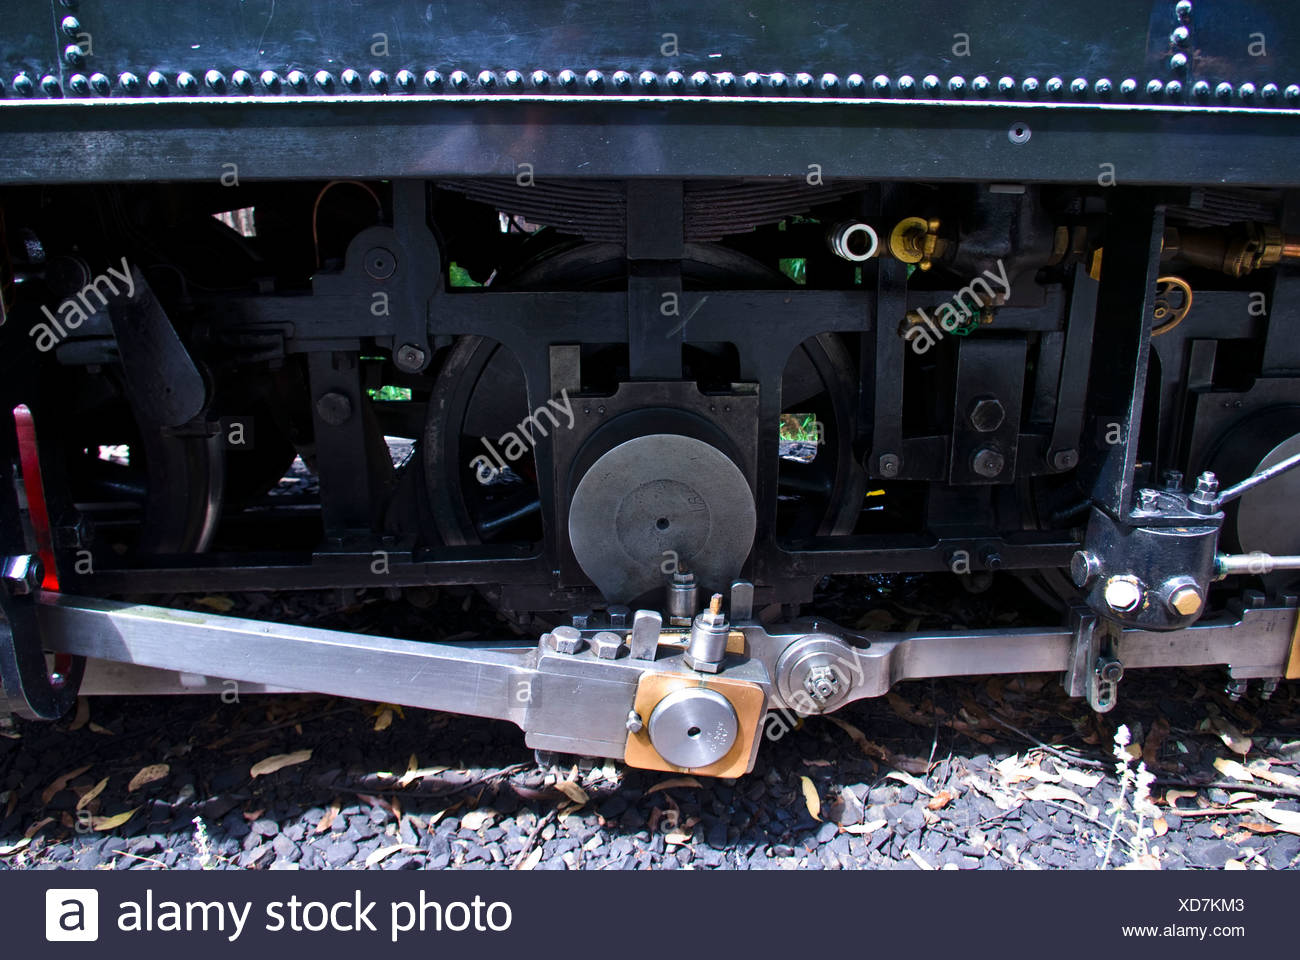 Coupling rods connect the drive wheels together on a steam train. - Stock Image